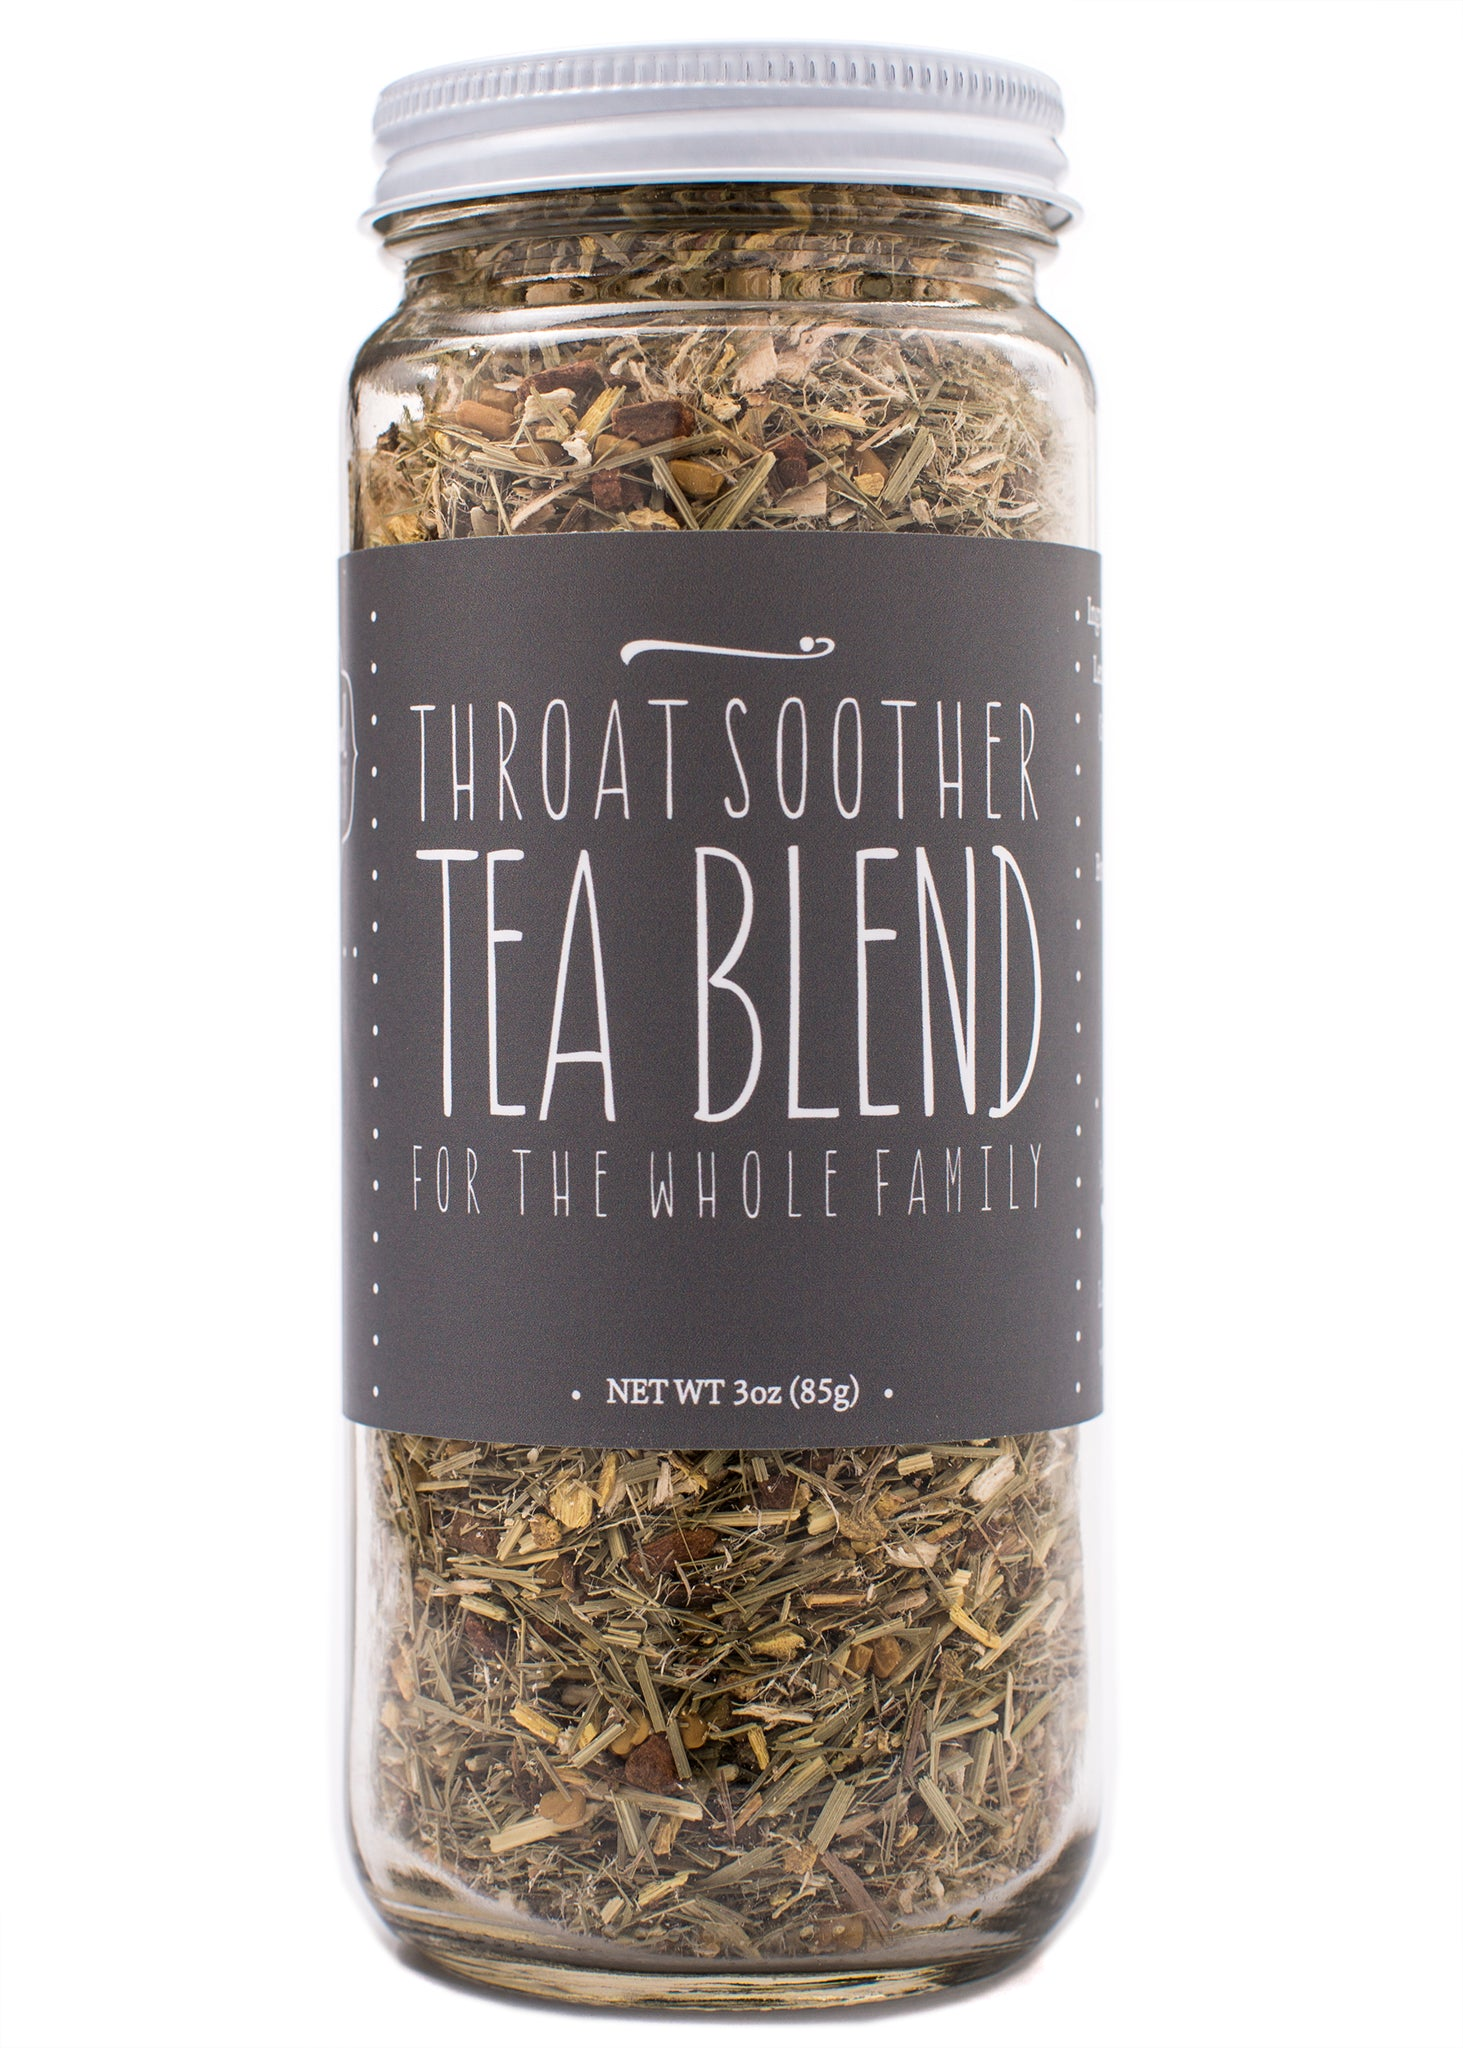 Throat Soother Tea Blend